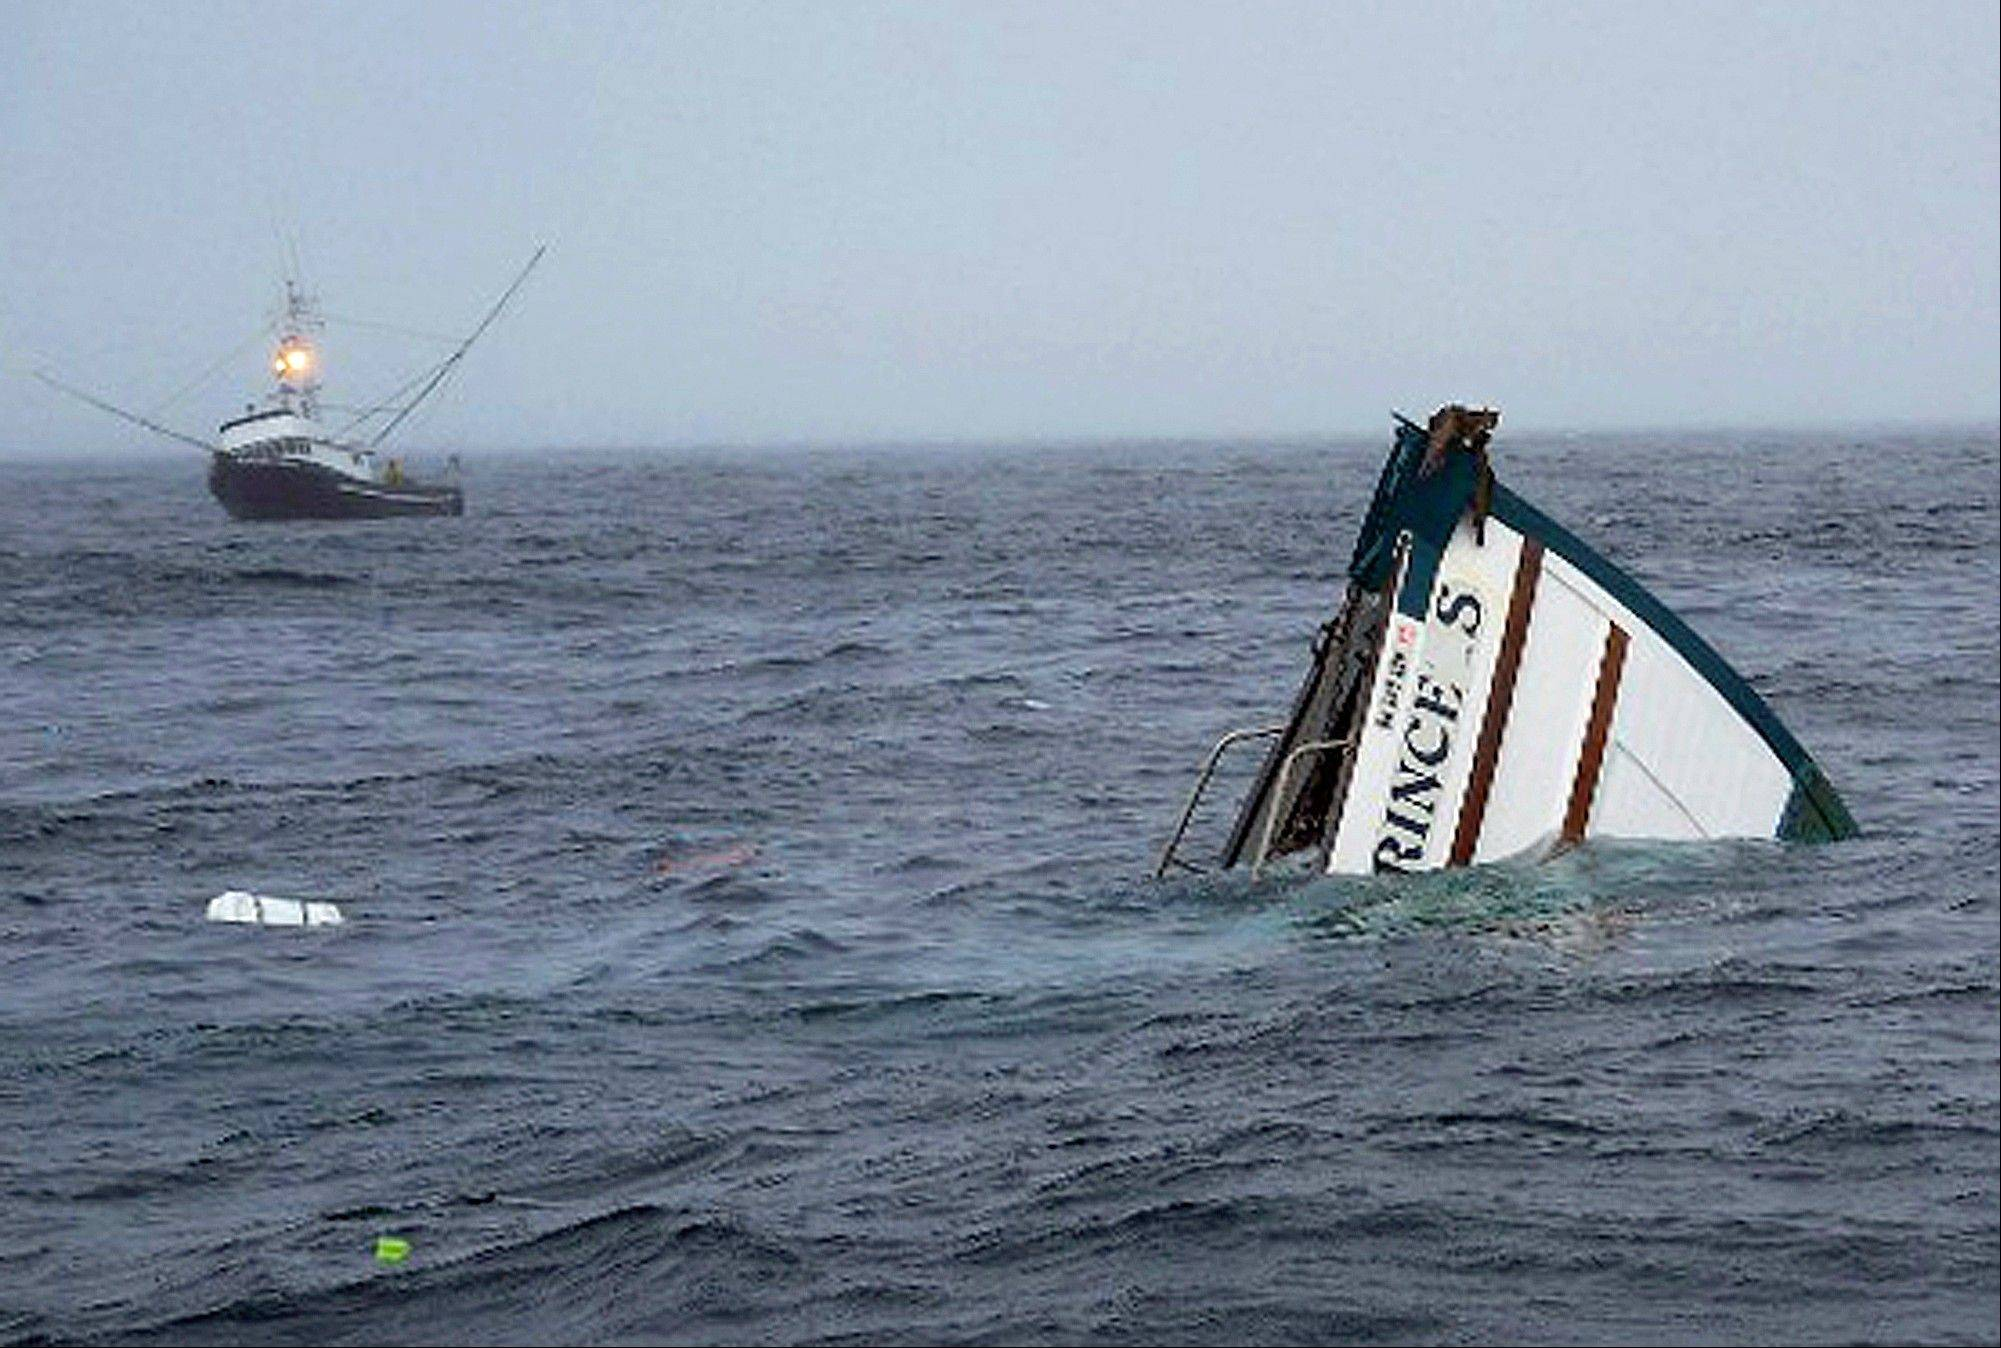 In this August 5, 2013 photo released by Mark Schneider, a cat named Jasper sits on top of a sinking tuna boat off the Oregon coast about 80 miles from Newport, Ore. Mark and Cynthia Schneider and their two cats, Jasper and Topaz, survived after the boat sank following an engine explosion. Both cats eventually swam through the ocean to safety on the rescue boat.